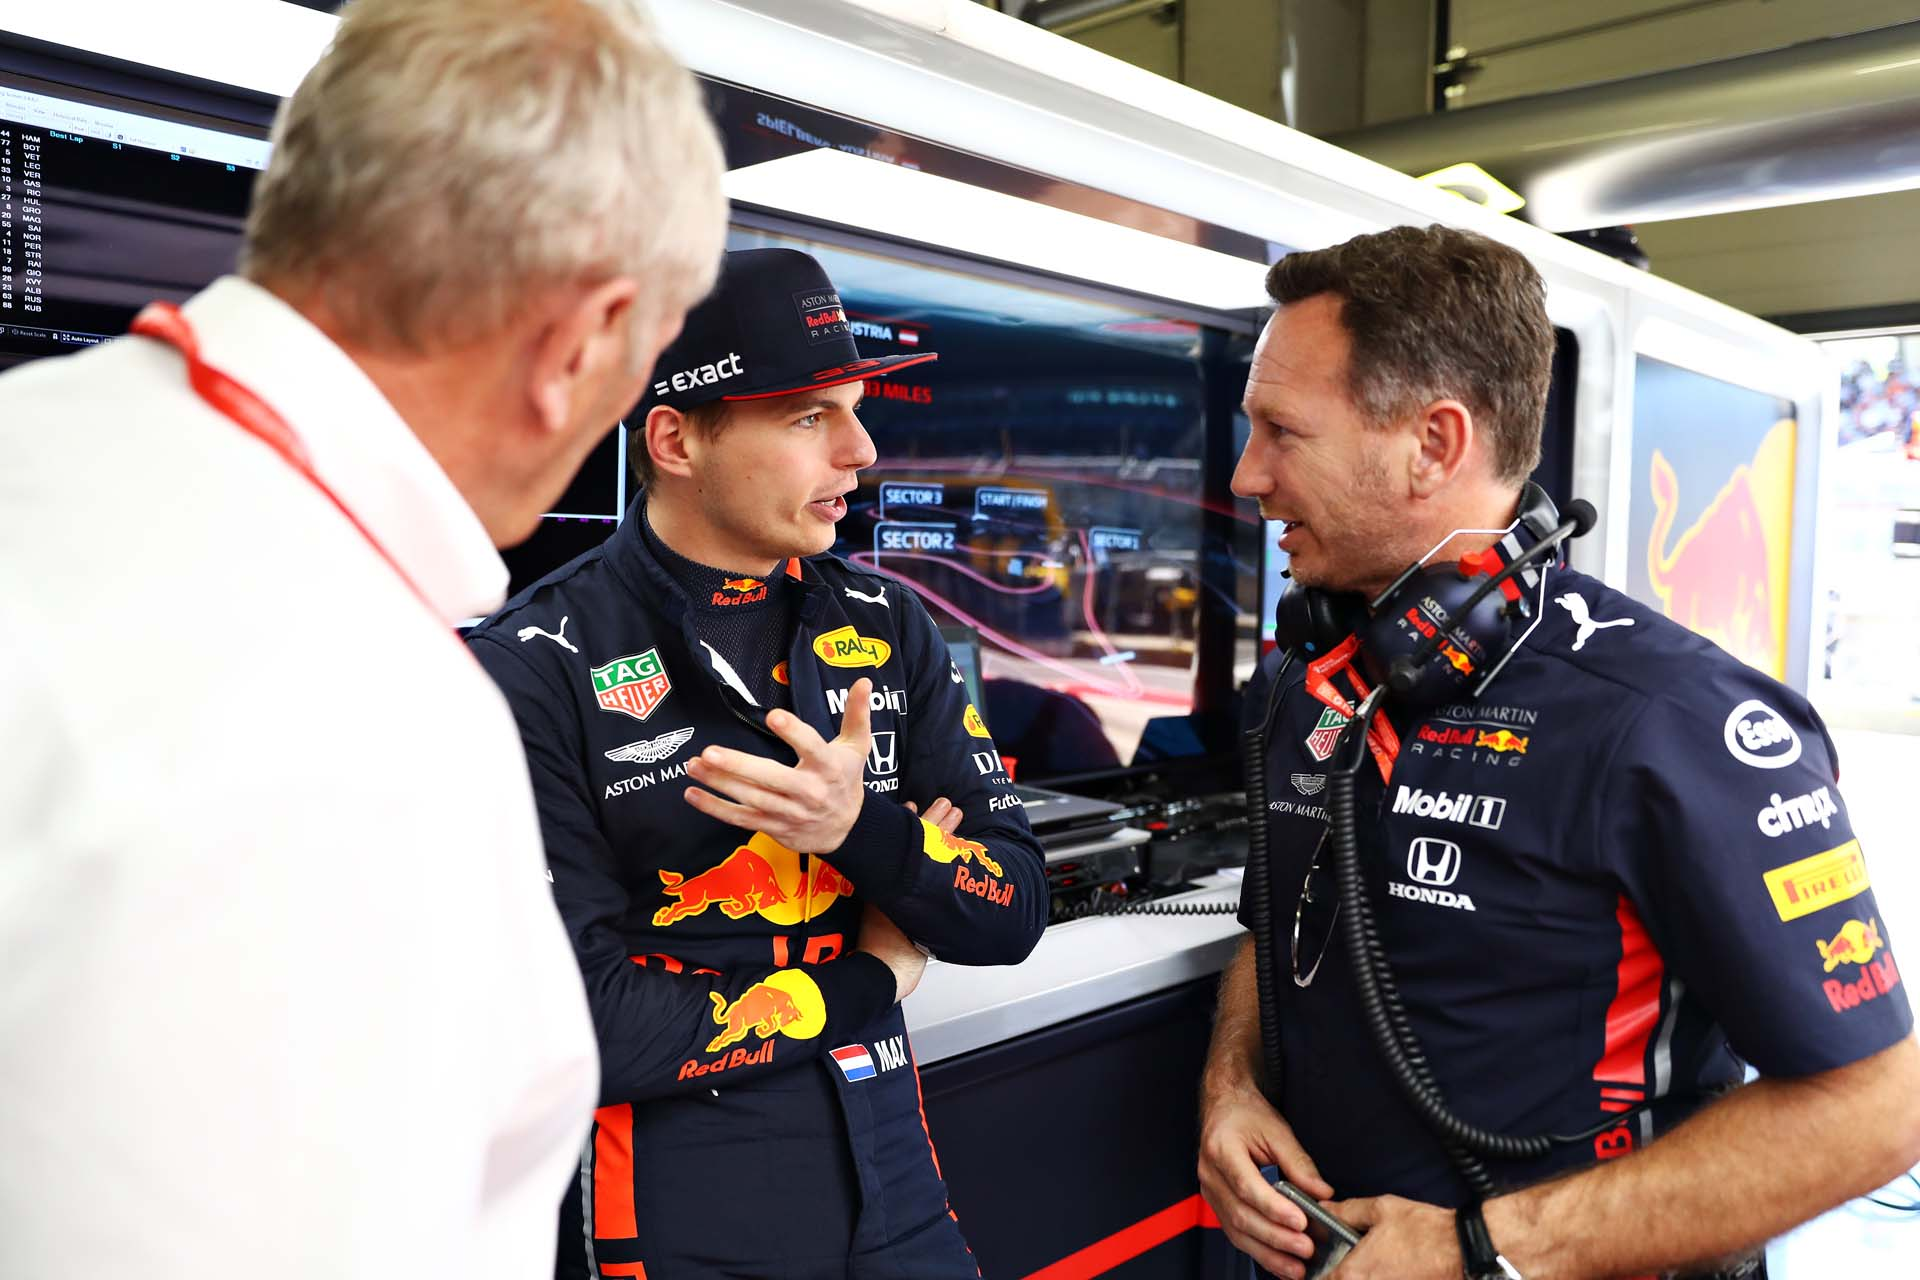 SPIELBERG, AUSTRIA - JUNE 29: Max Verstappen of Netherlands and Red Bull Racing talks with Red Bull Racing Team Principal Christian Horner and Red Bull Racing Team Consultant Dr Helmut Marko in the garage during qualifying for the F1 Grand Prix of Austria at Red Bull Ring on June 29, 2019 in Spielberg, Austria. (Photo by Mark Thompson/Getty Images) // Getty Images / Red Bull Content Pool  // AP-1ZSYN5YDS1W11 // Usage for editorial use only // Please go to www.redbullcontentpool.com for further information. //